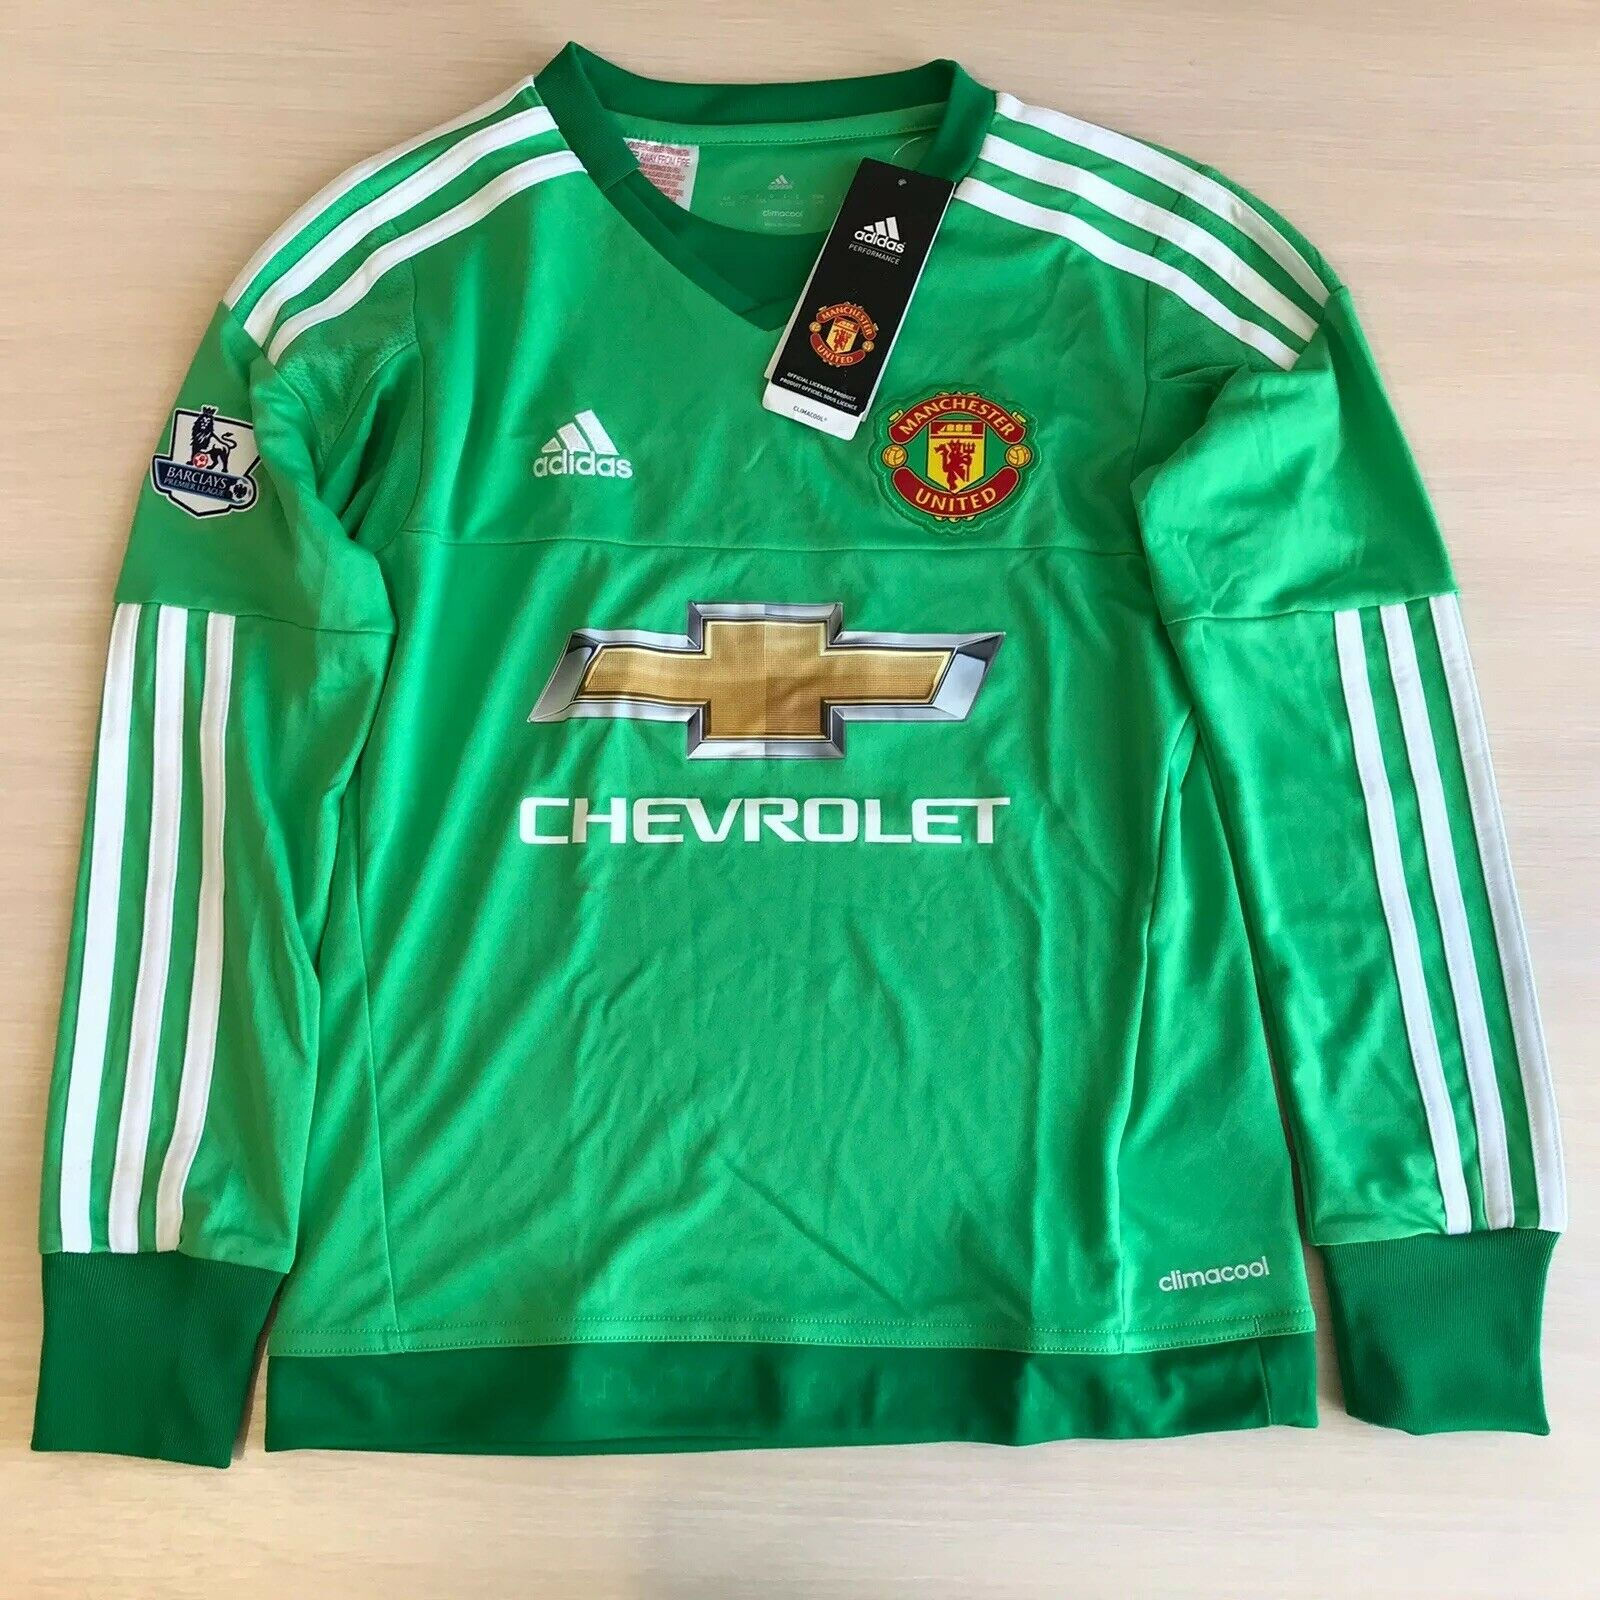 Boys Manchester United 2015/2016 Goalkeeper Size S Adidas ac1460 jersey